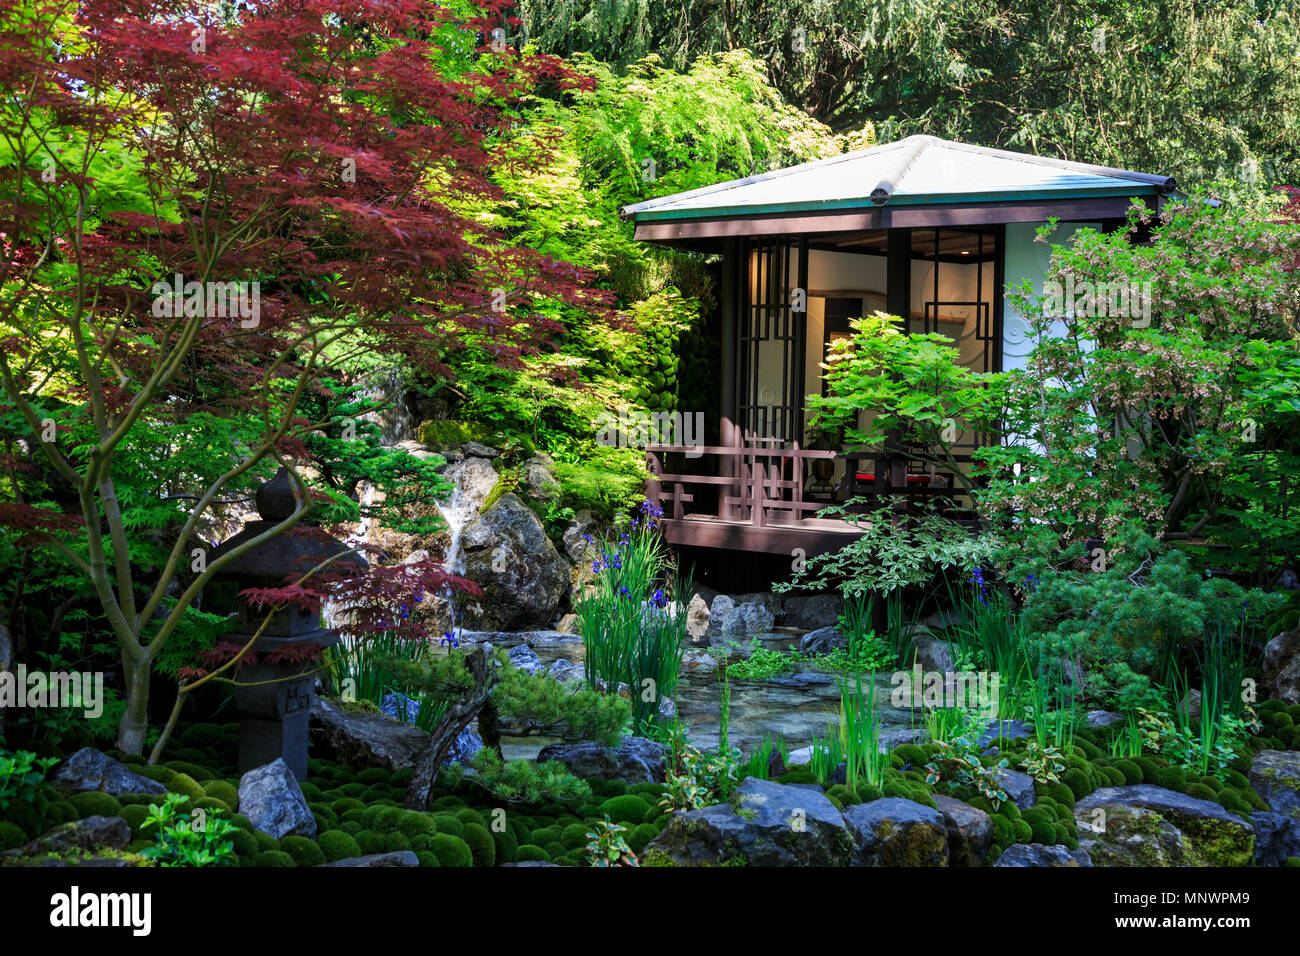 London, UK. 20 May 2018. The O-mo-te-na-shi no NIWA - The Hospitality Garden created by Kazuyuki Ishihara. Preparations are well under way for the start of the Chelsea Flower Show. Photo: Bettina Strenske/Alamy Live News - Stock Image